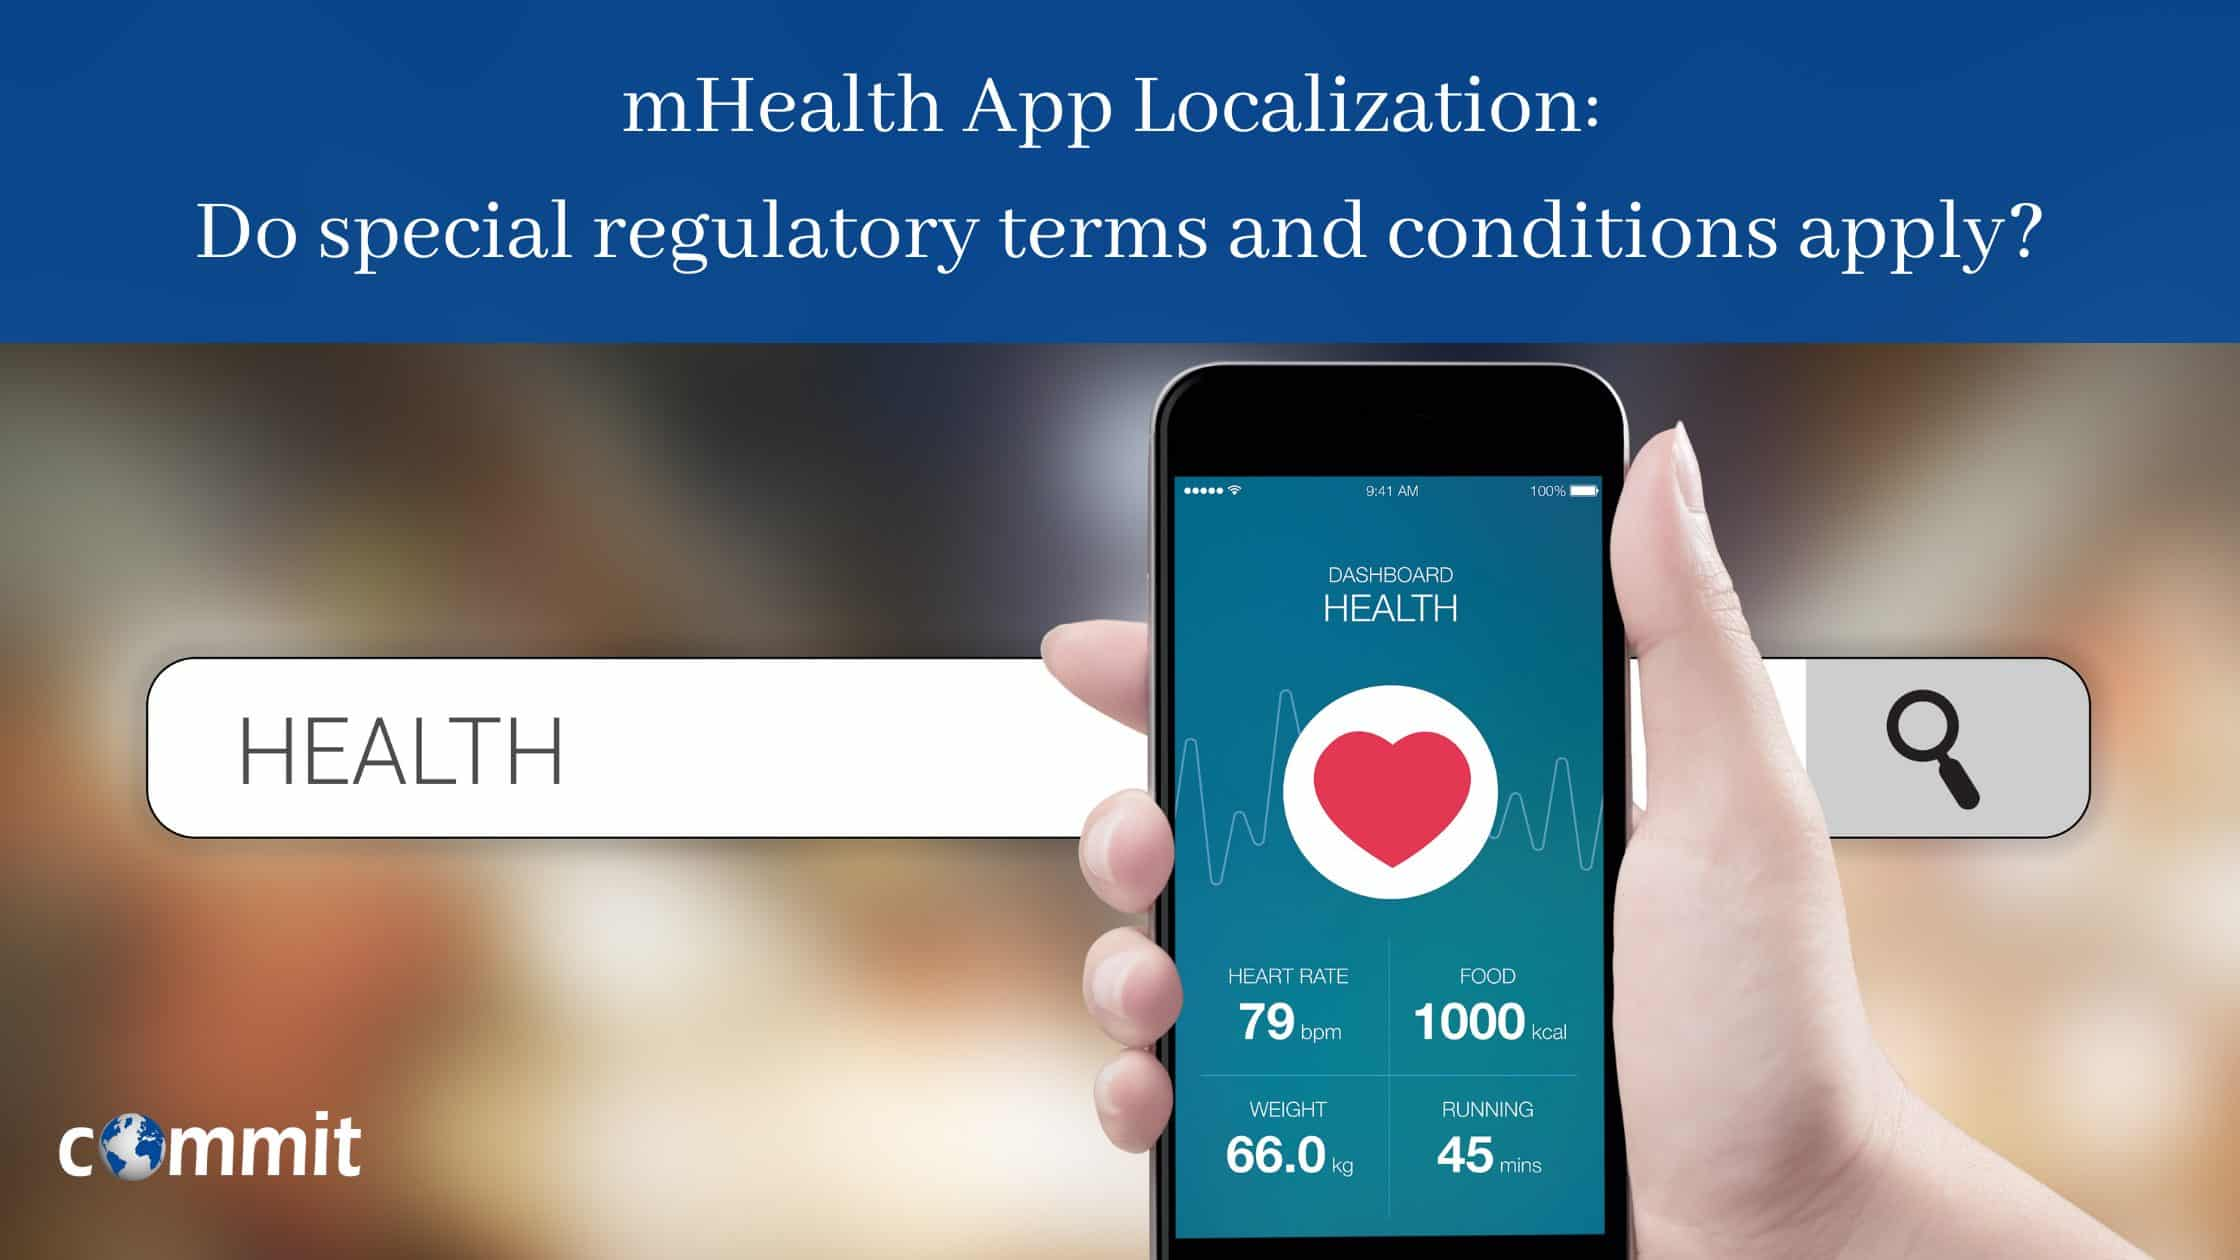 mHealth App Localization: Do special regulatory terms and conditions apply?